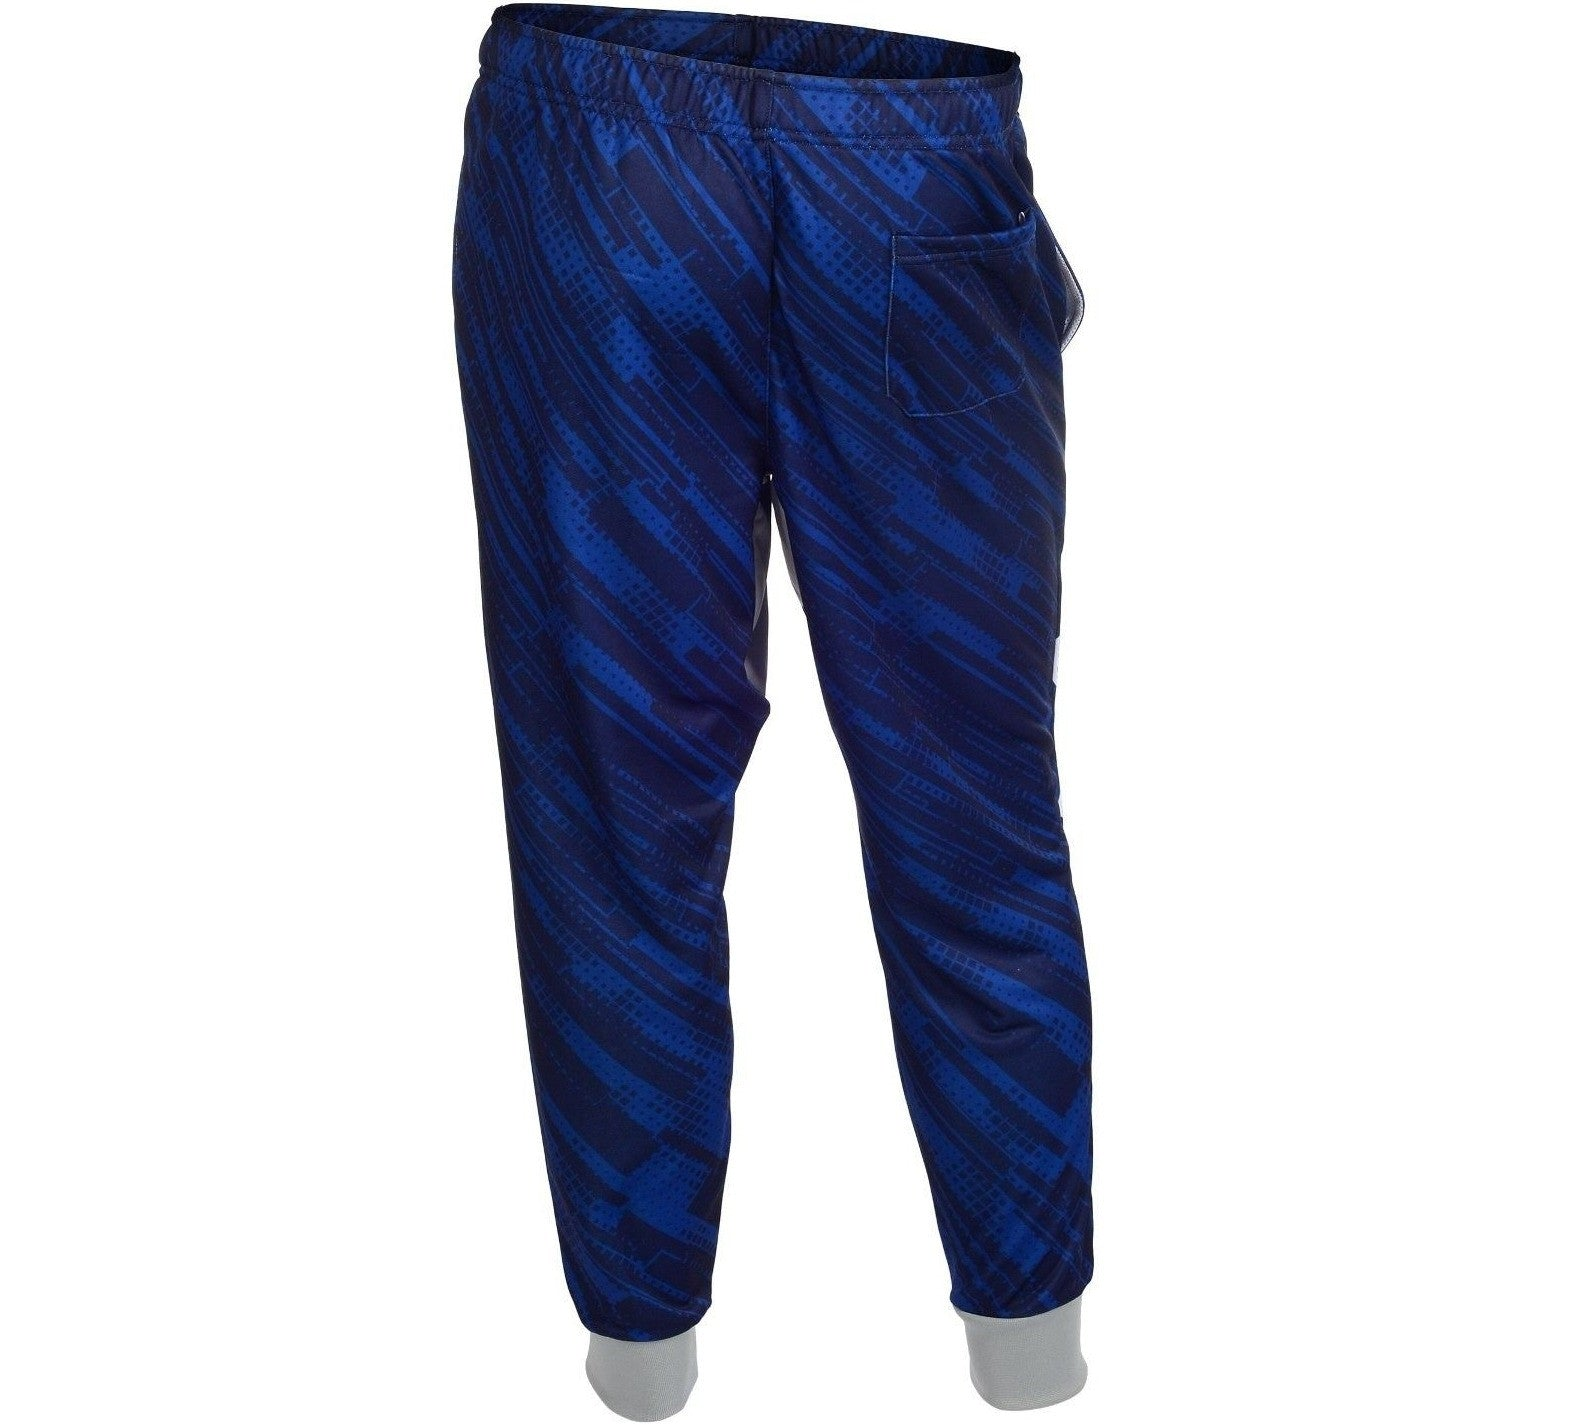 Yankees Retro Jogger Pants